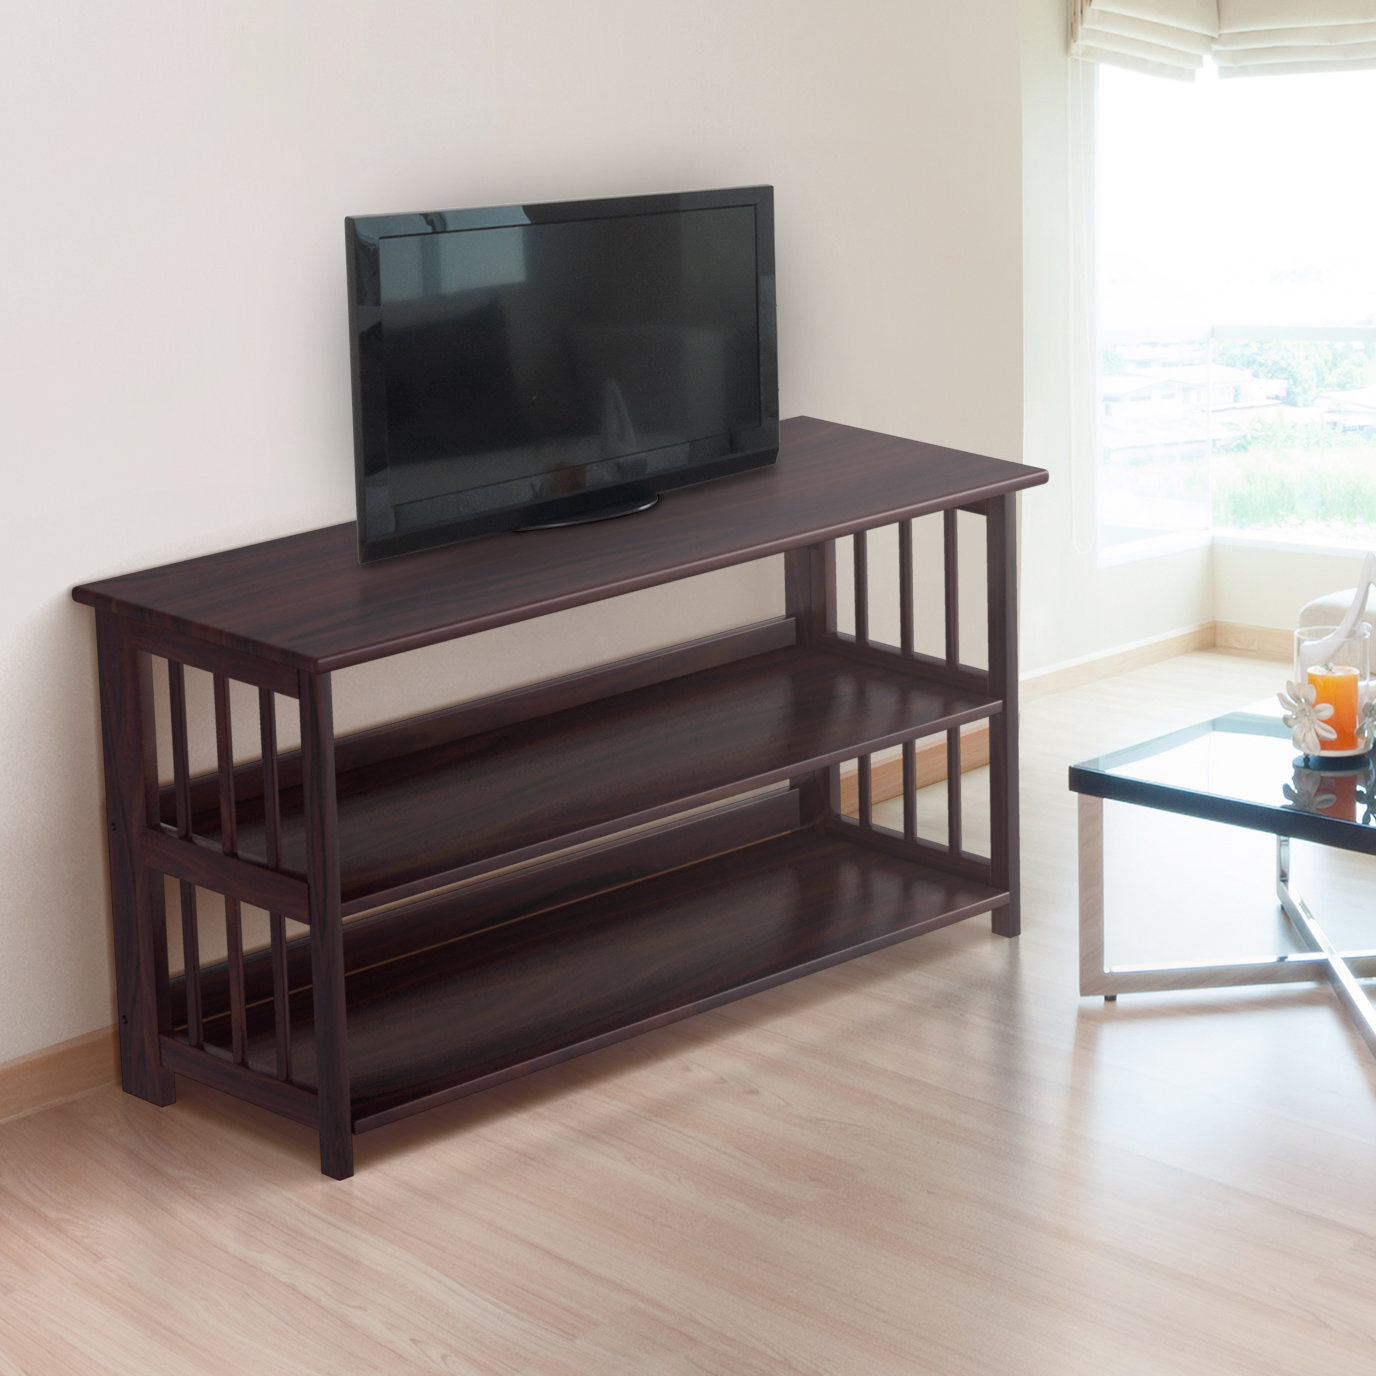 Tv Stands With Matching Bookcases Regarding Most Recent Bookcase Tv Stand Combo (View 7 of 20)